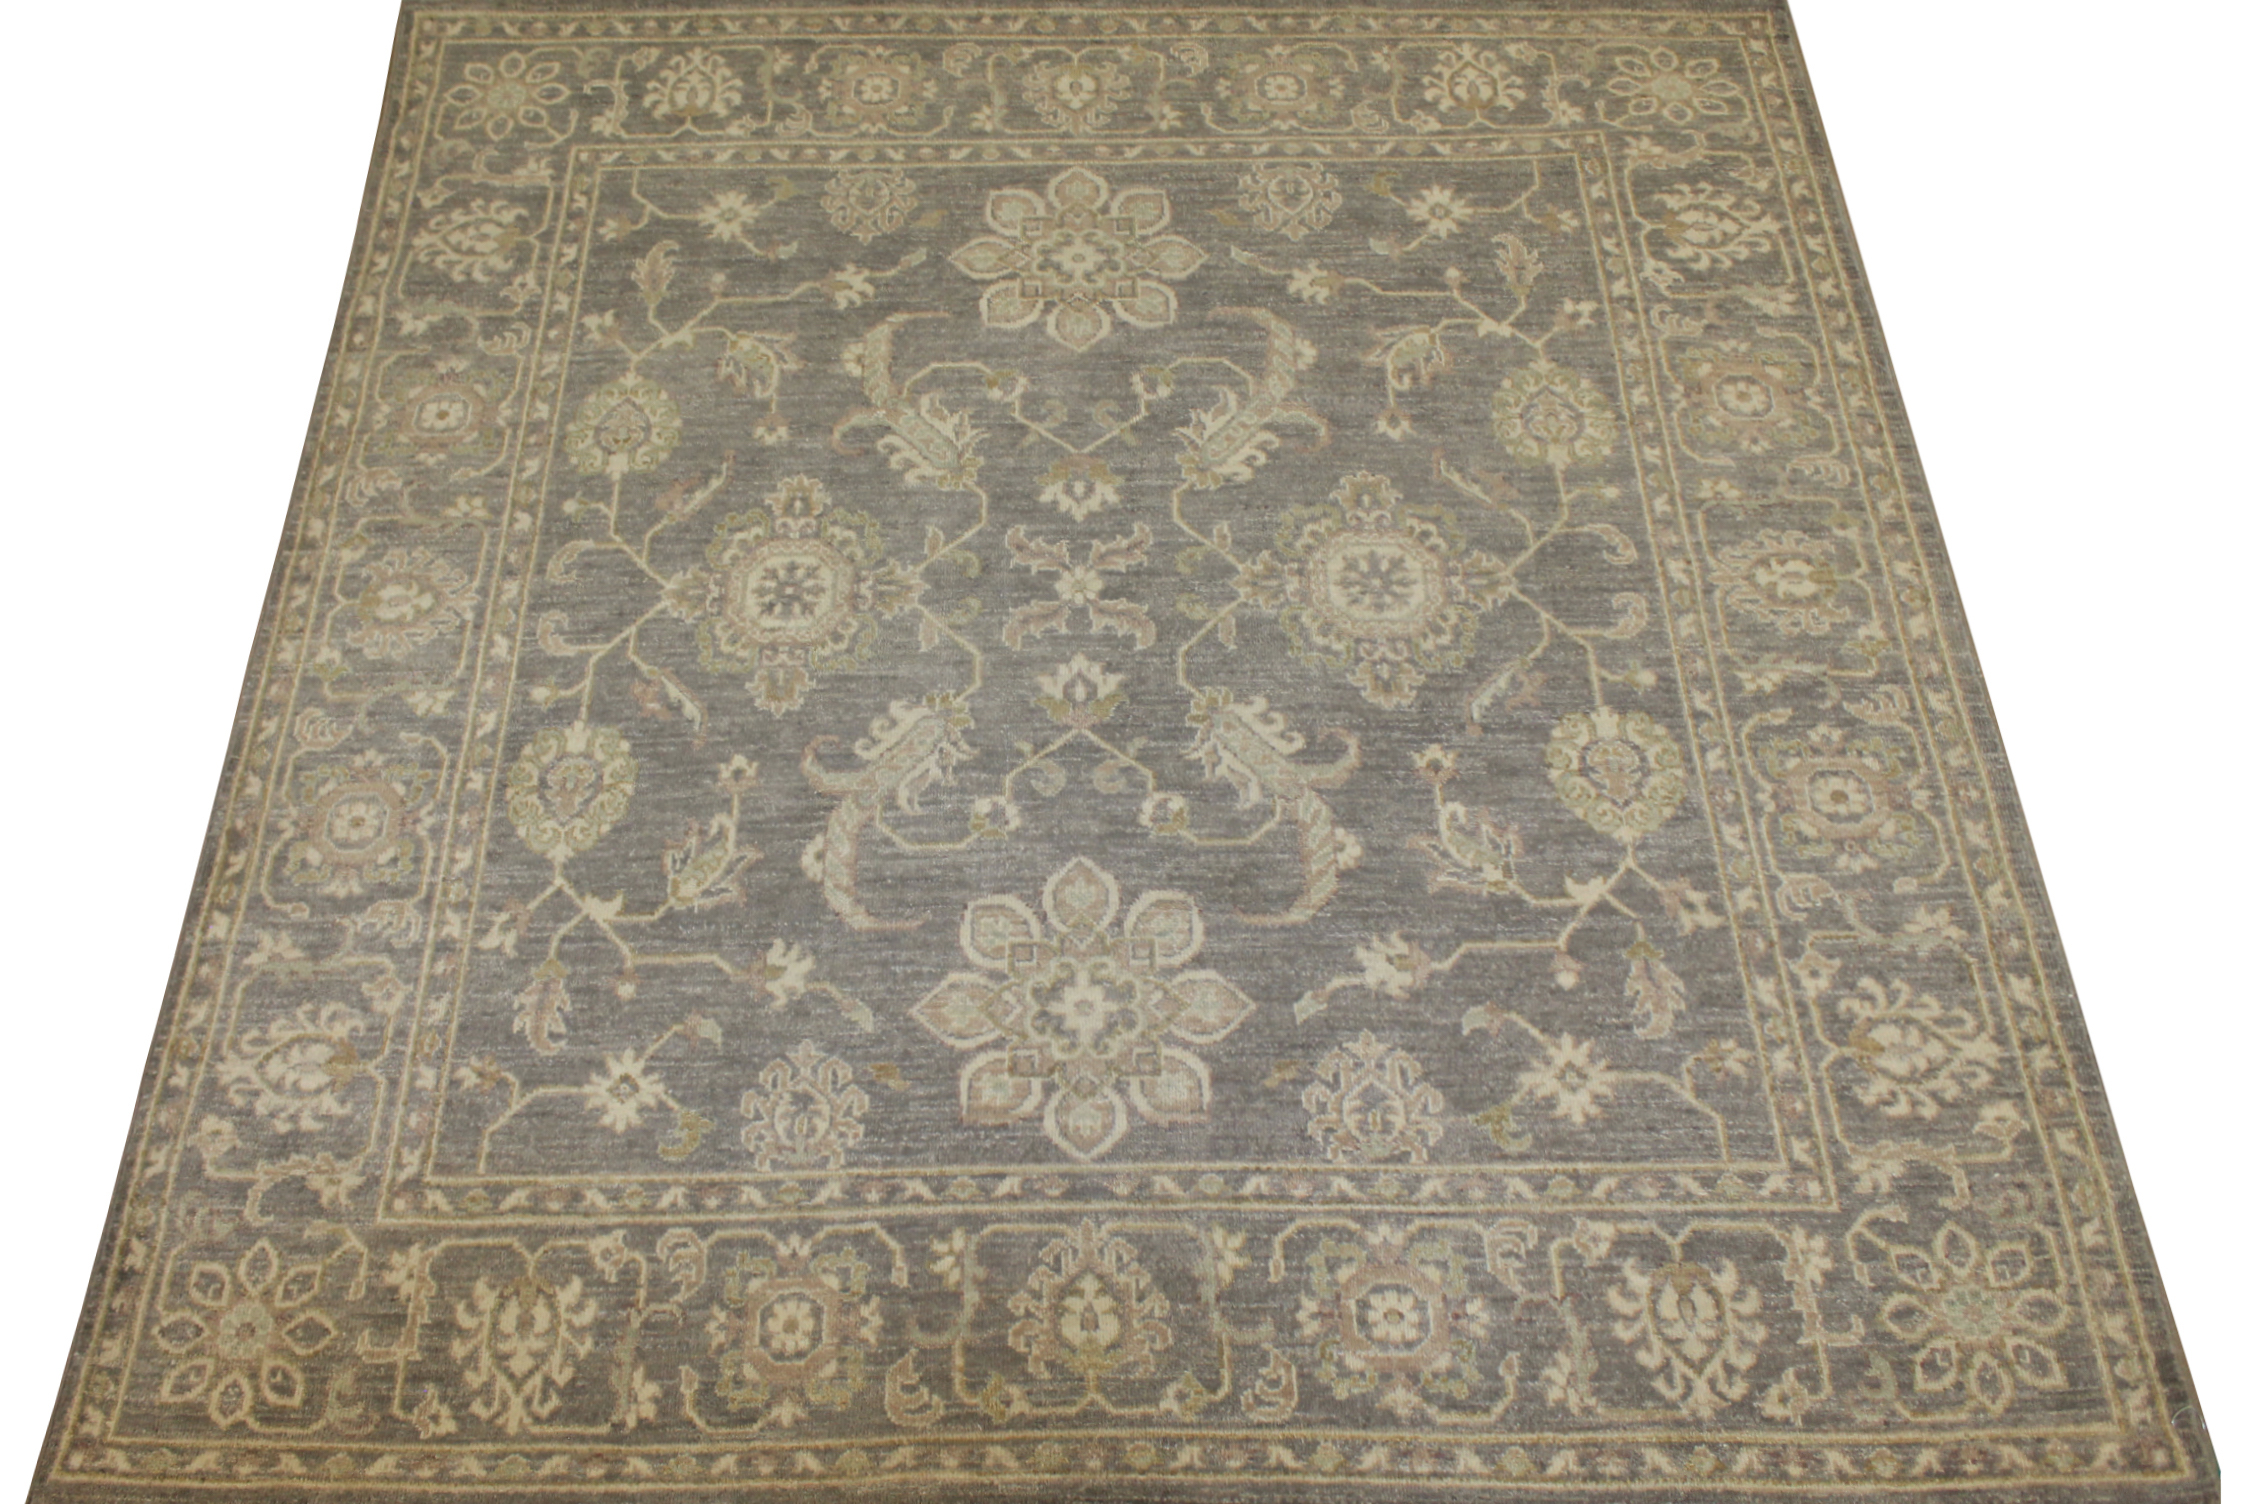 6 ft. - 7 ft. Round & Square Peshawar Hand Knotted Wool Area Rug - MR17276